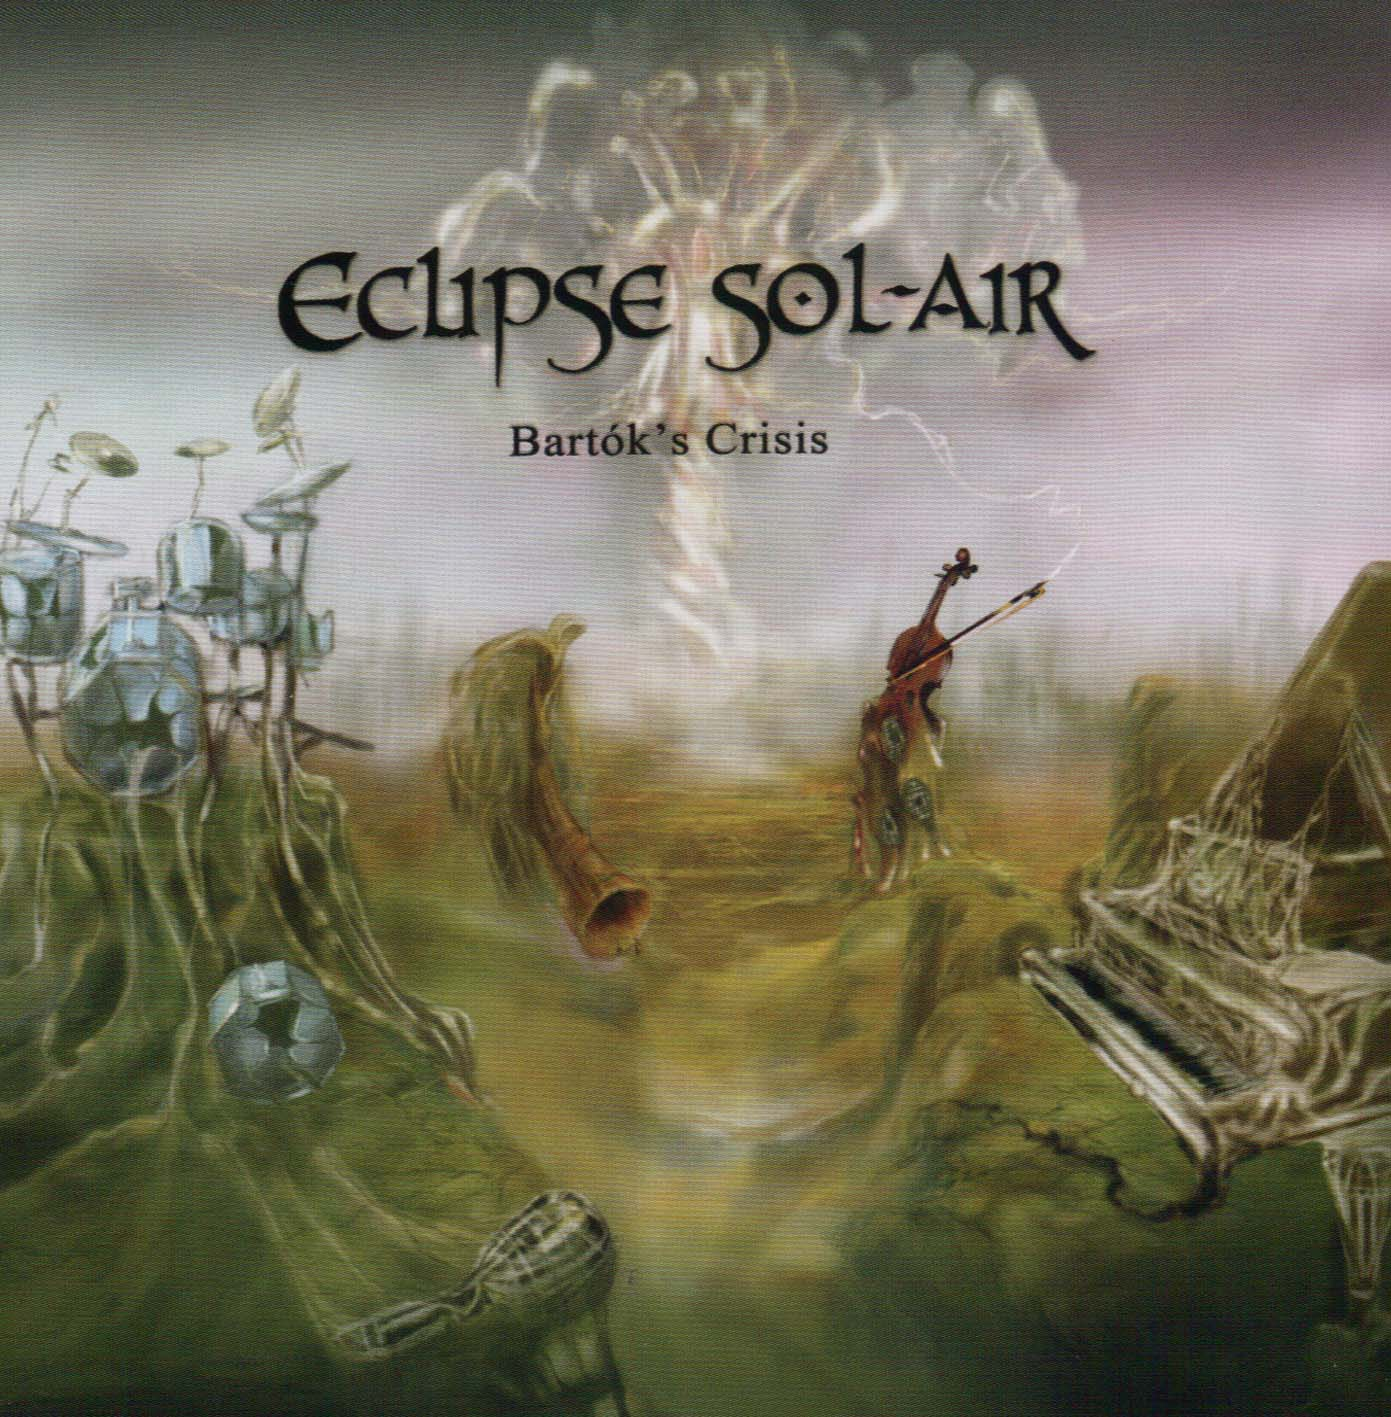 Bartok's Crisis - ECLIPSE SOL-AIR